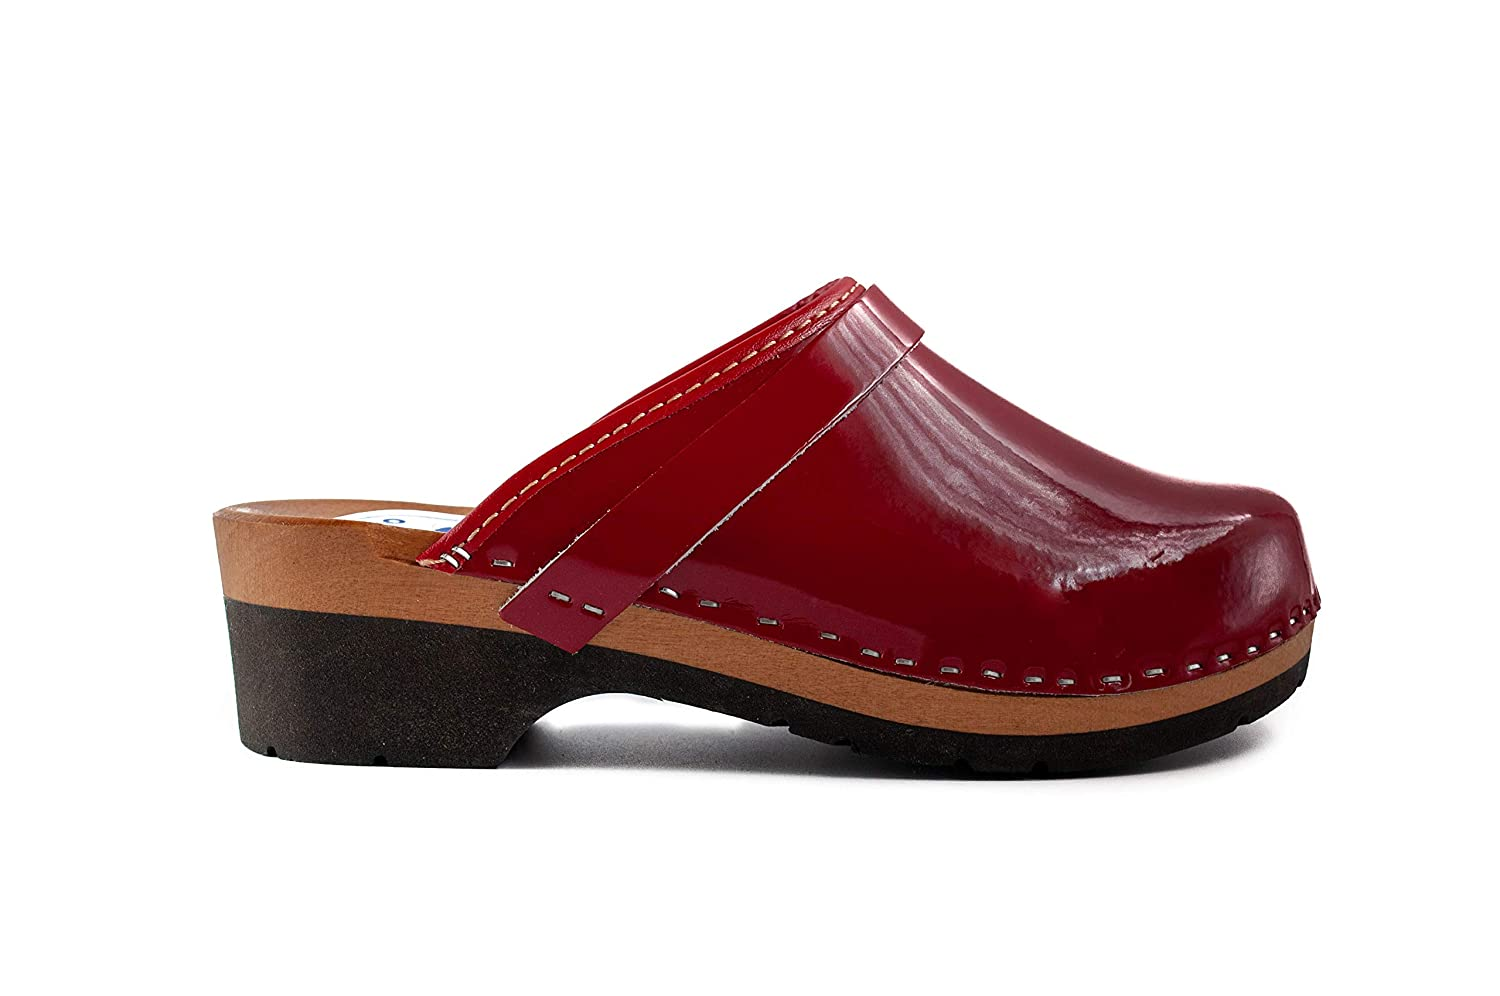 Leather clogs,Women clogs,Leather mules,Clogs women,Women clogs,Swedish clogs,Gift for her,Clogs 8,Clogs,Women leather shoes,Women shoes